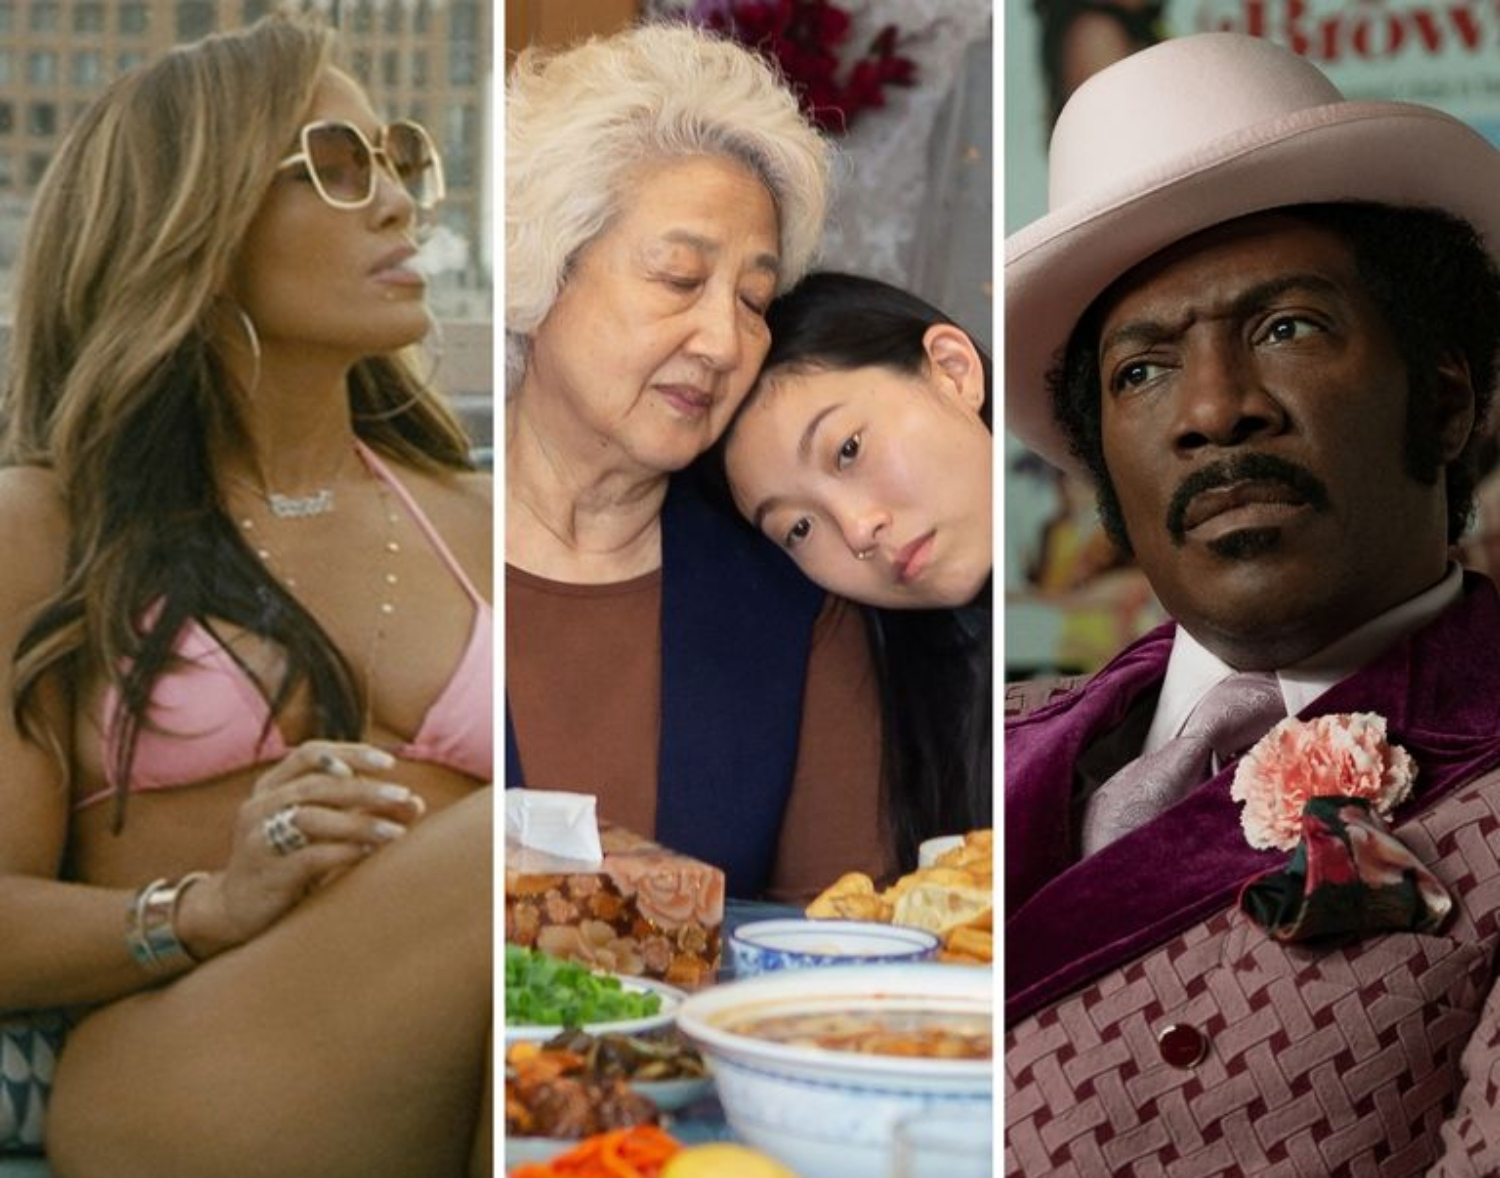 12 Snubs and Surprises from the 2020 Oscar Nominations